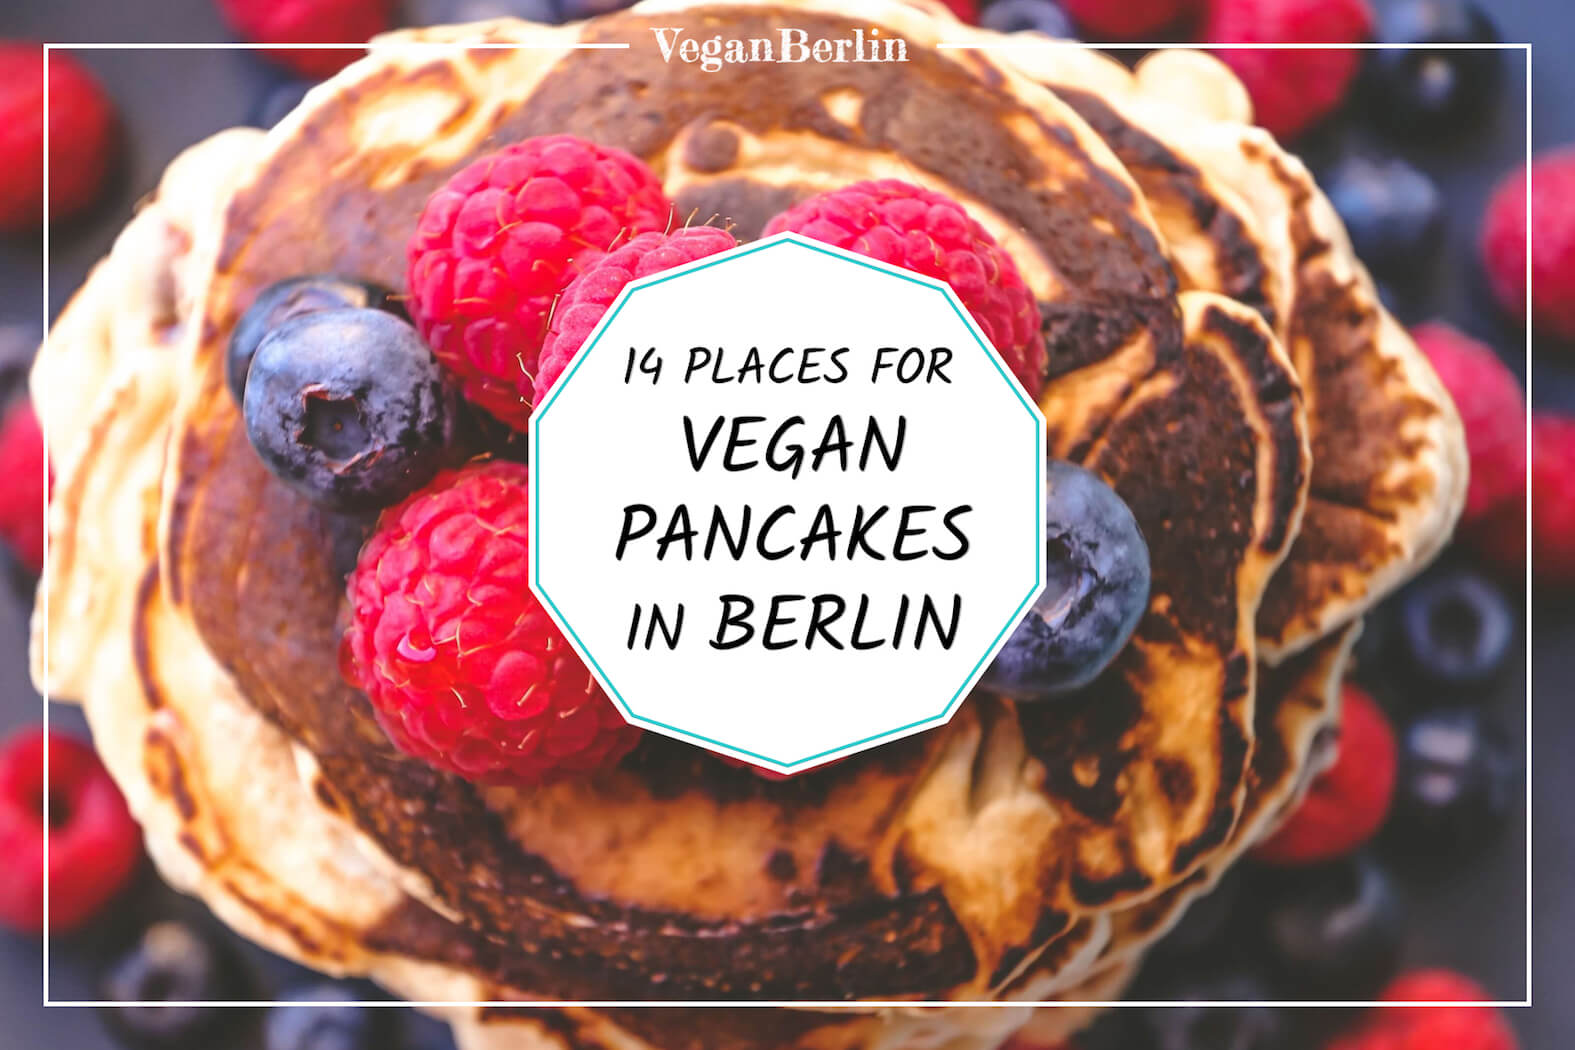 Vegan Pancake restaurants and cafes in Berlin